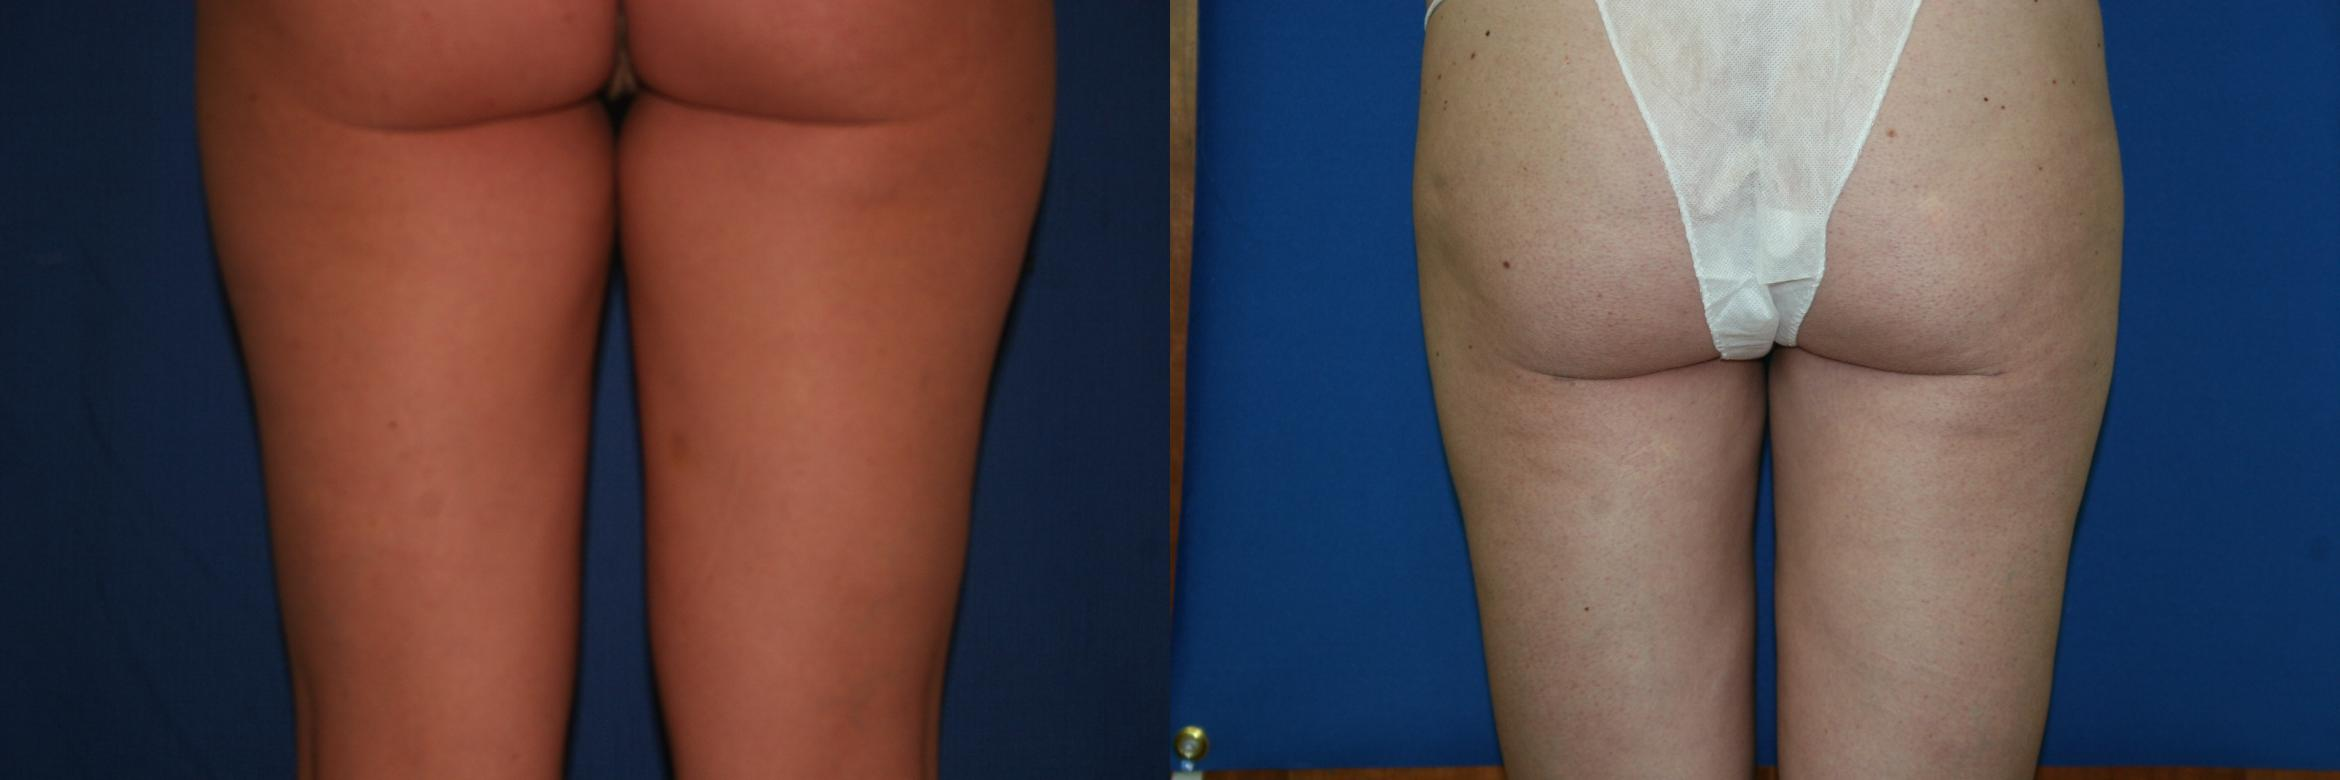 Liposuction Case 25 Before & After View #2 | Palo Alto, CA | Daryl K. Hoffman, MD